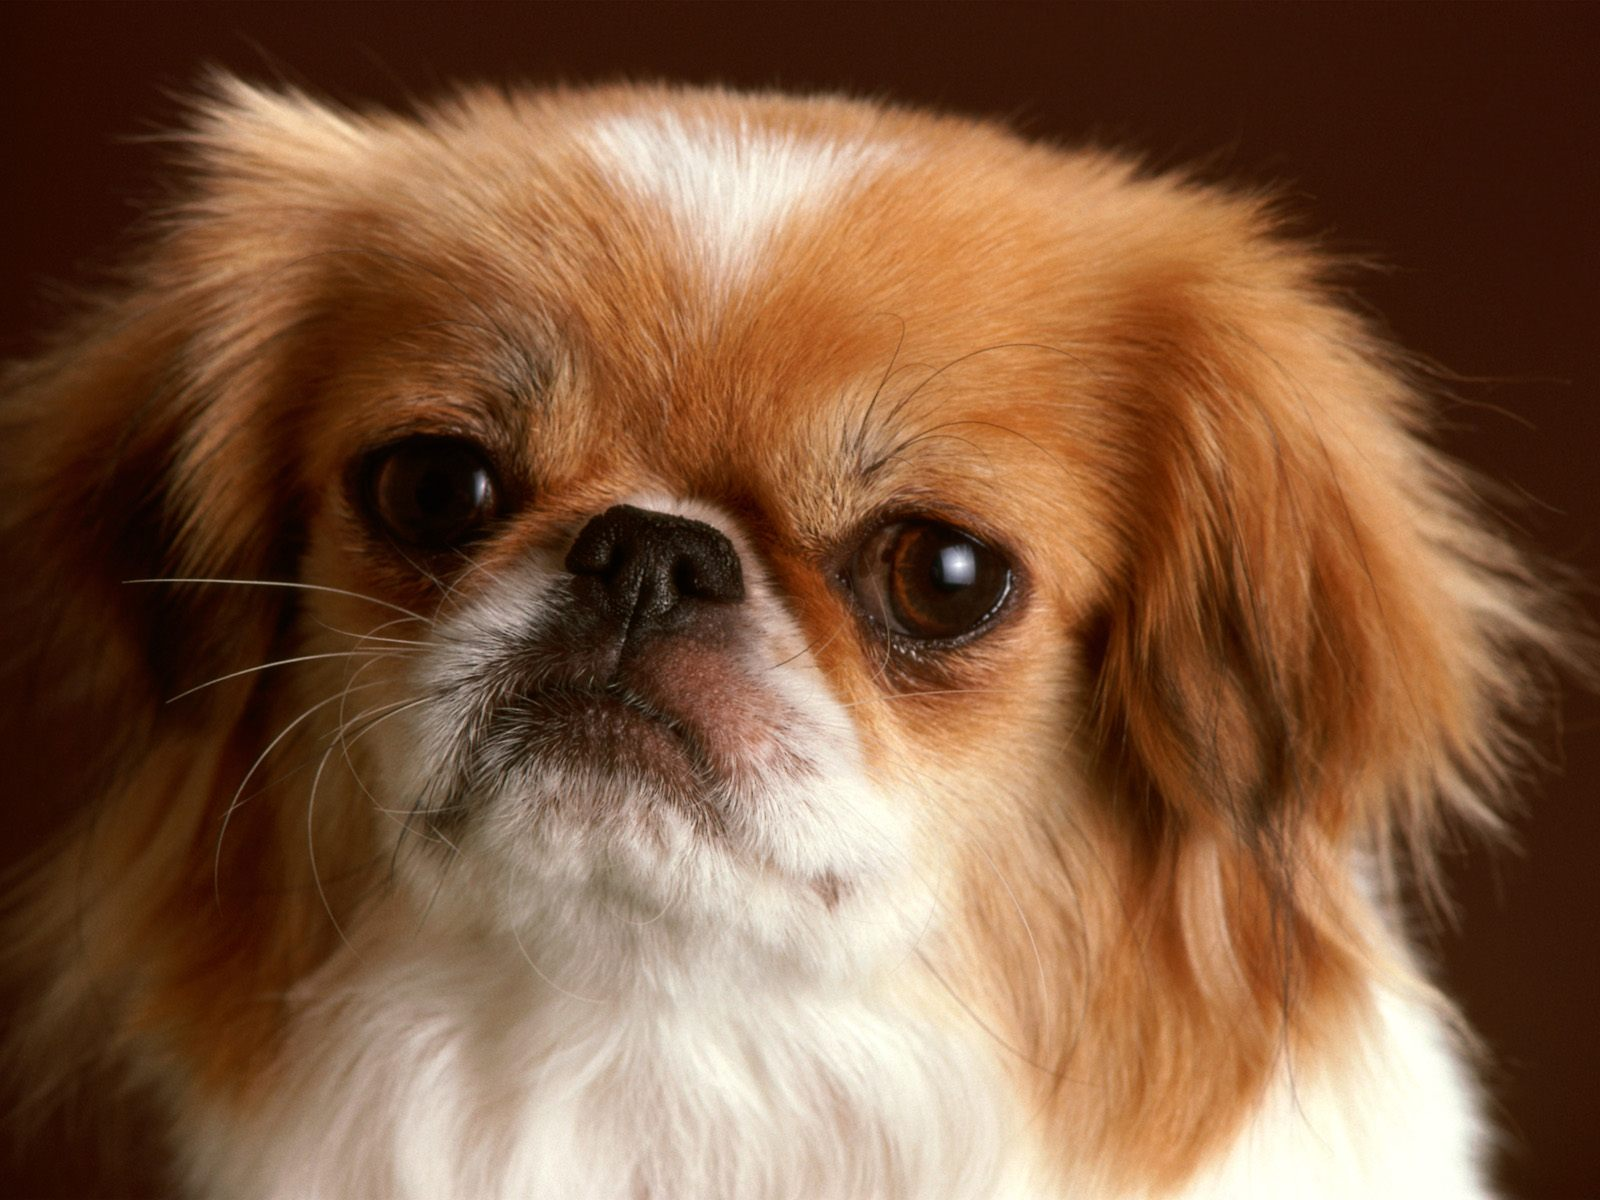 pekingese dog breed info pets animal domestic hound wallpaper